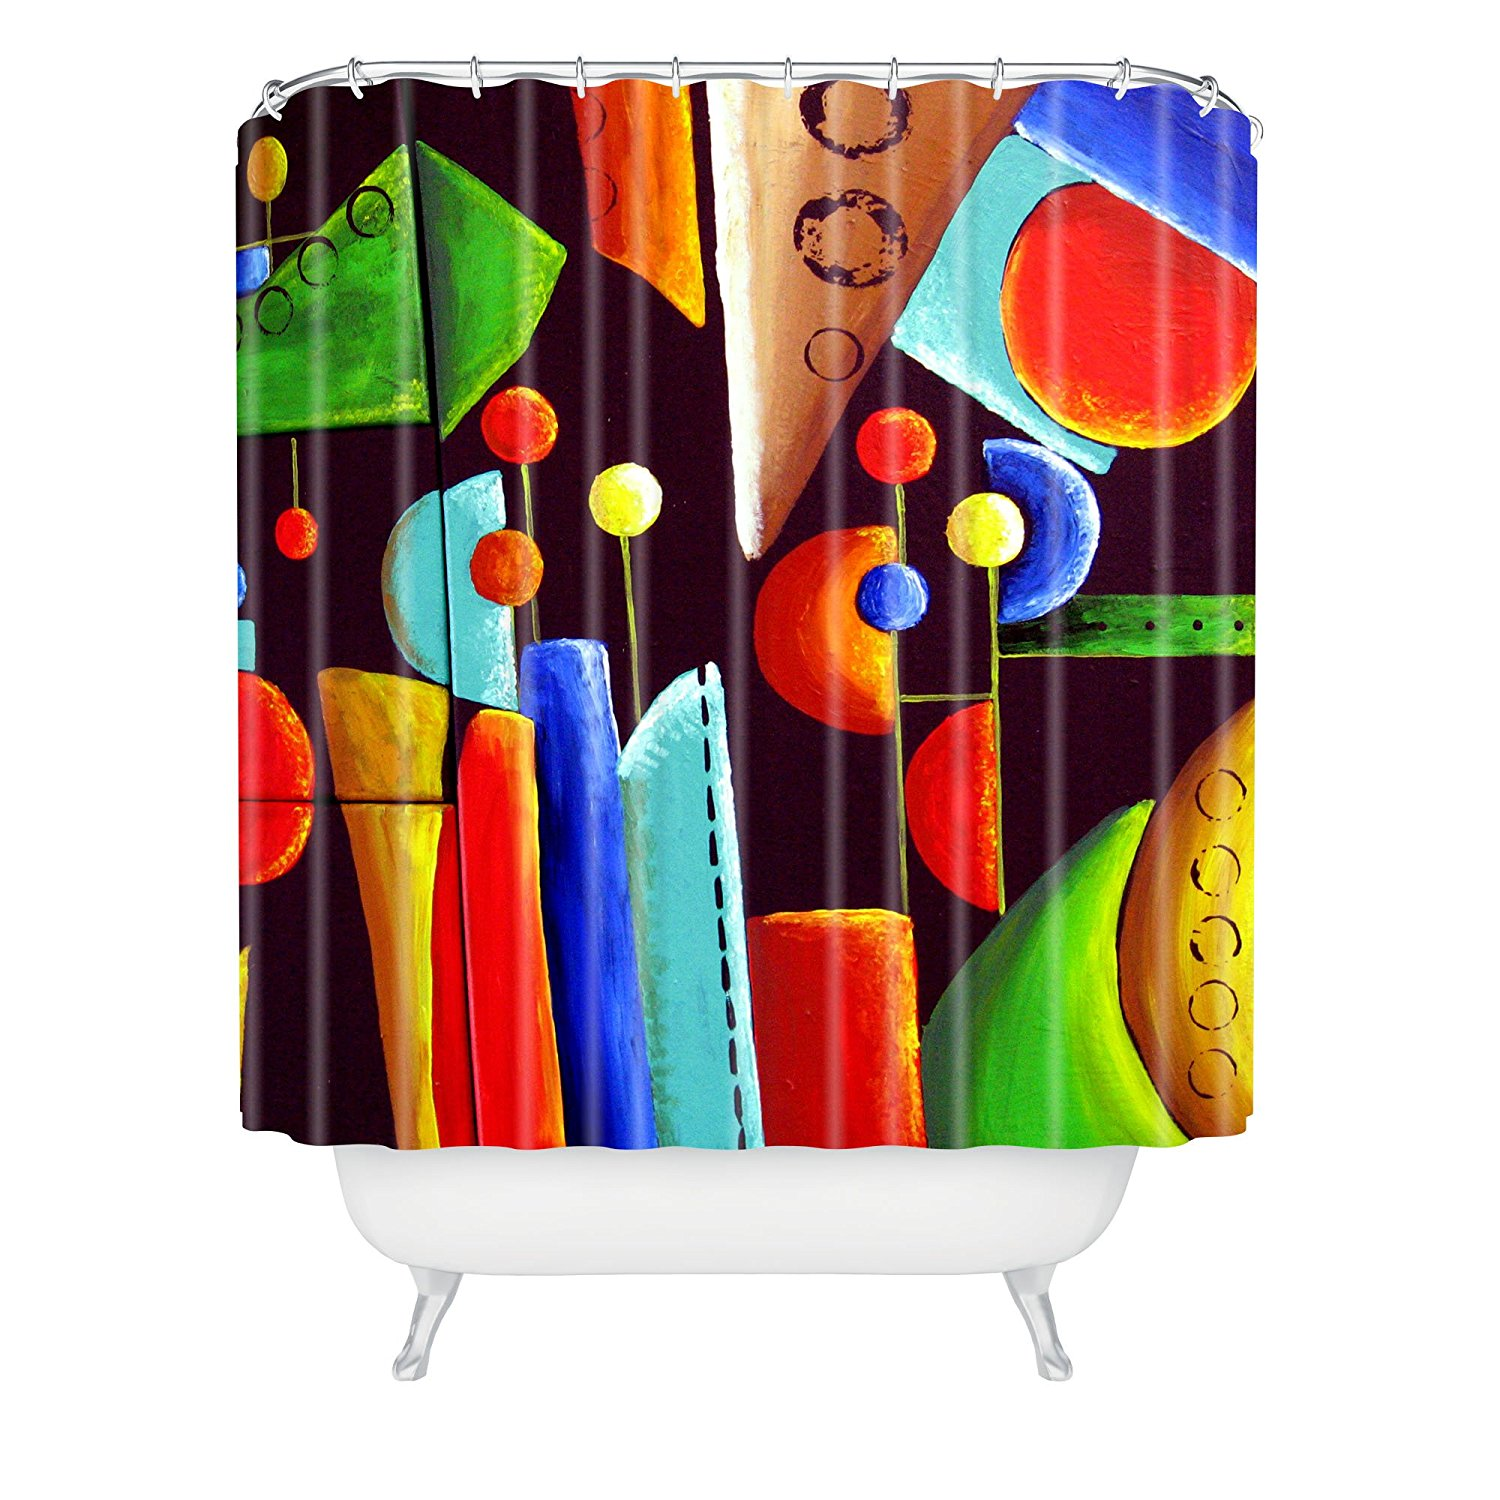 Funky shower curtains - Renie Britenbucher Funky Abstract Shower Curtain 72x72inches